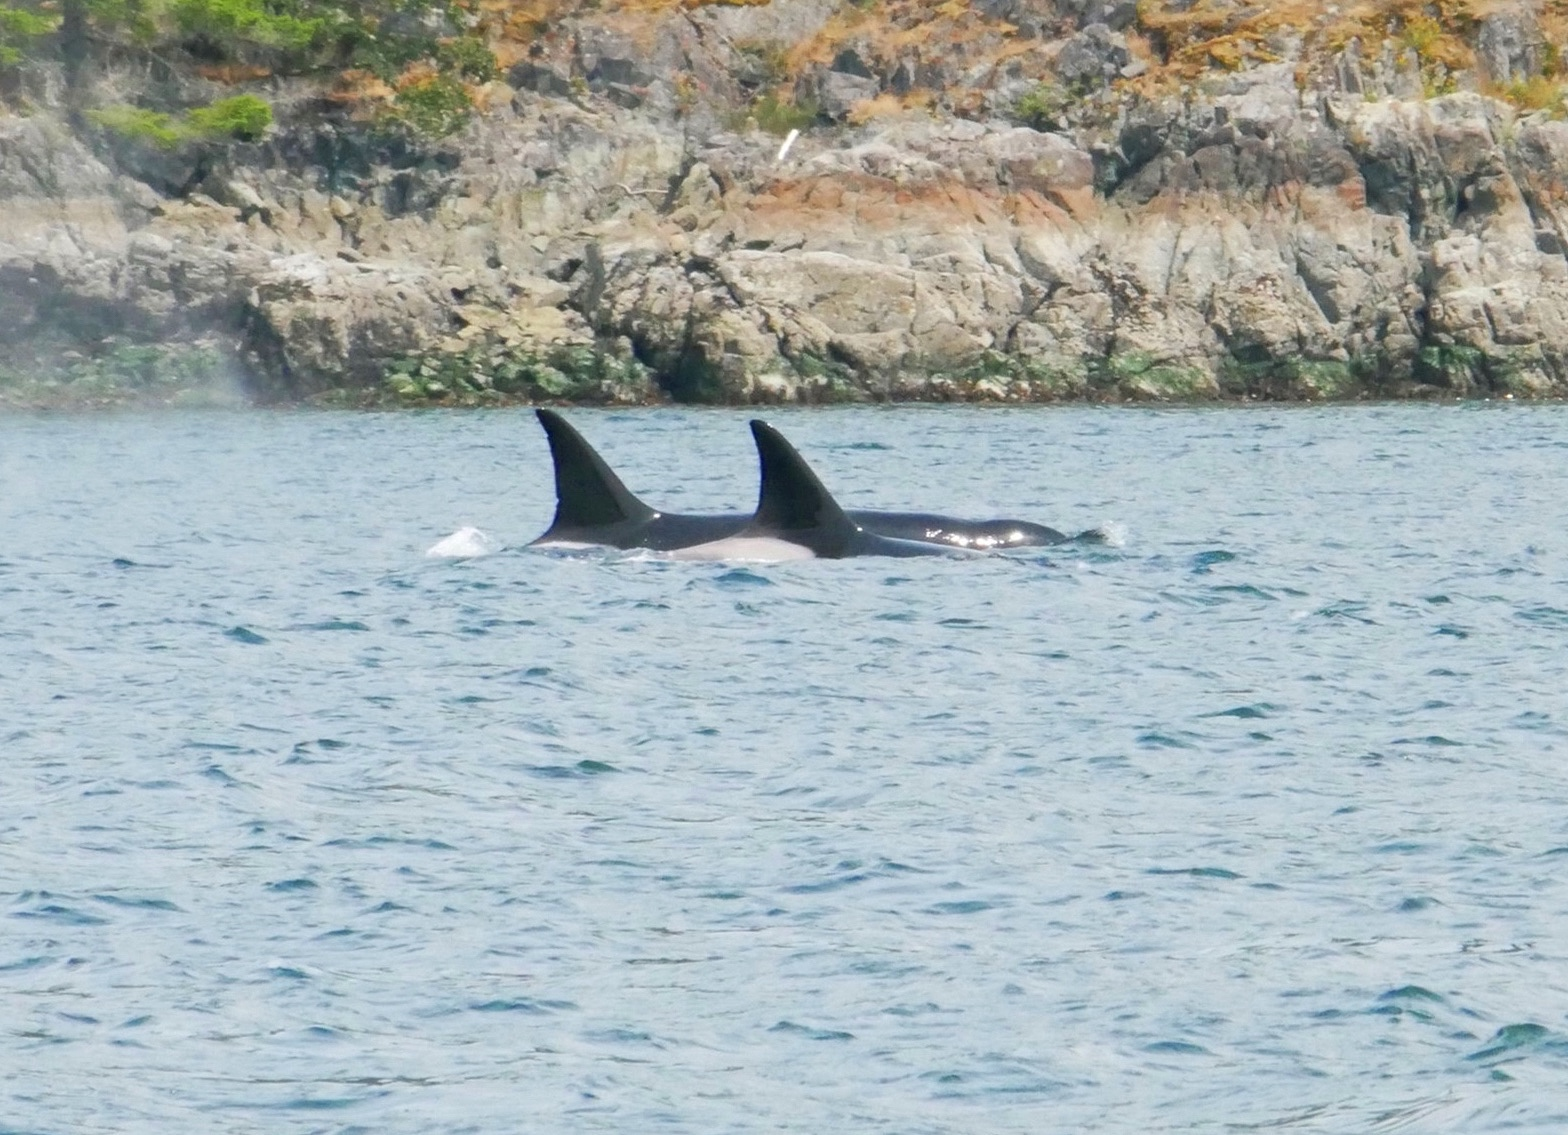 Swimming together. Photo by Cheyenne Brewster (10:30).